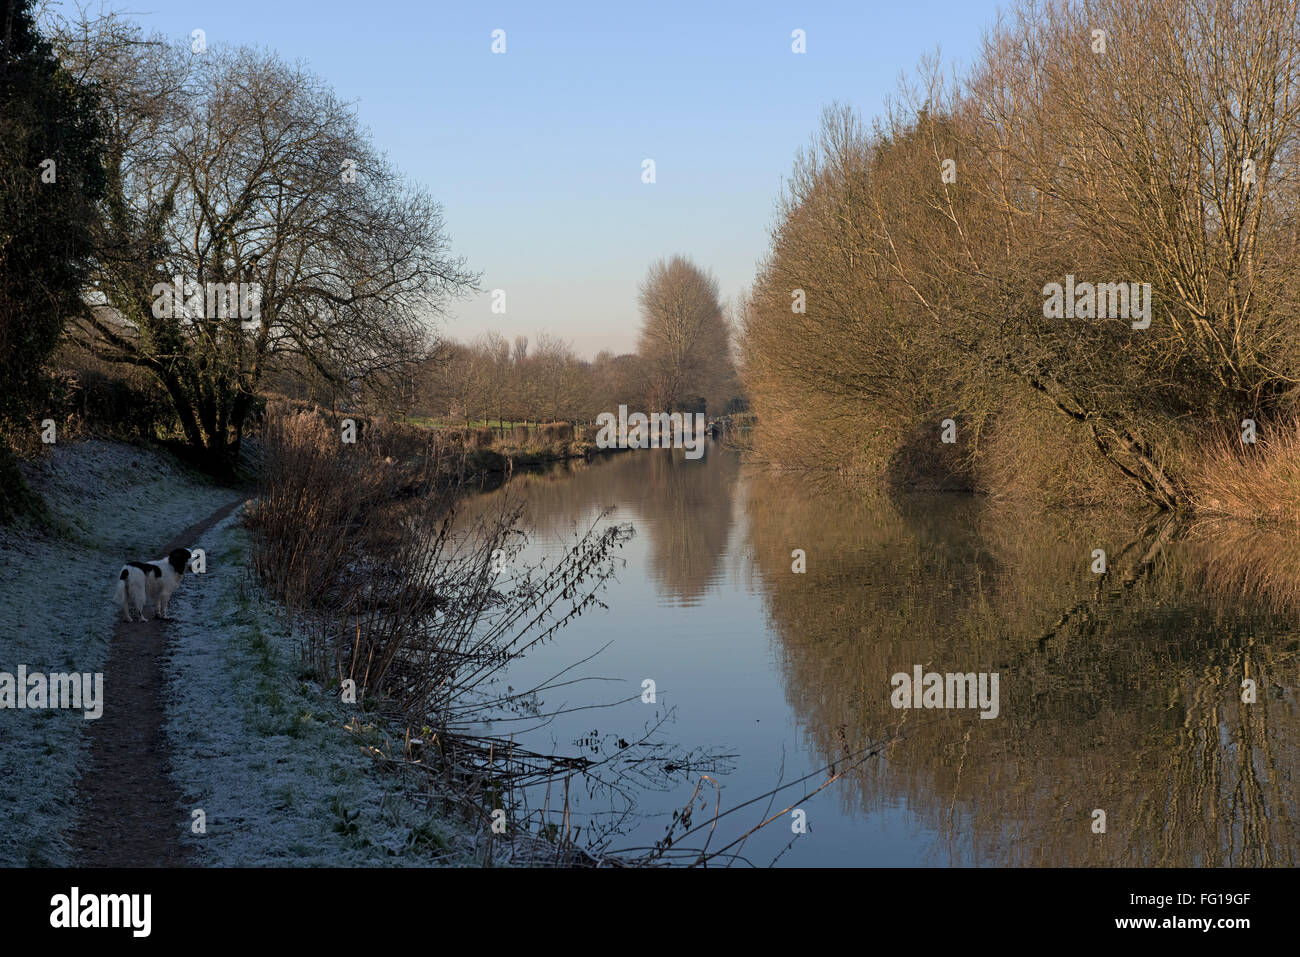 Kennet and Avon Canal on Hungerford Common with frost on the shadow side and tree reflections in the still water - Stock Image